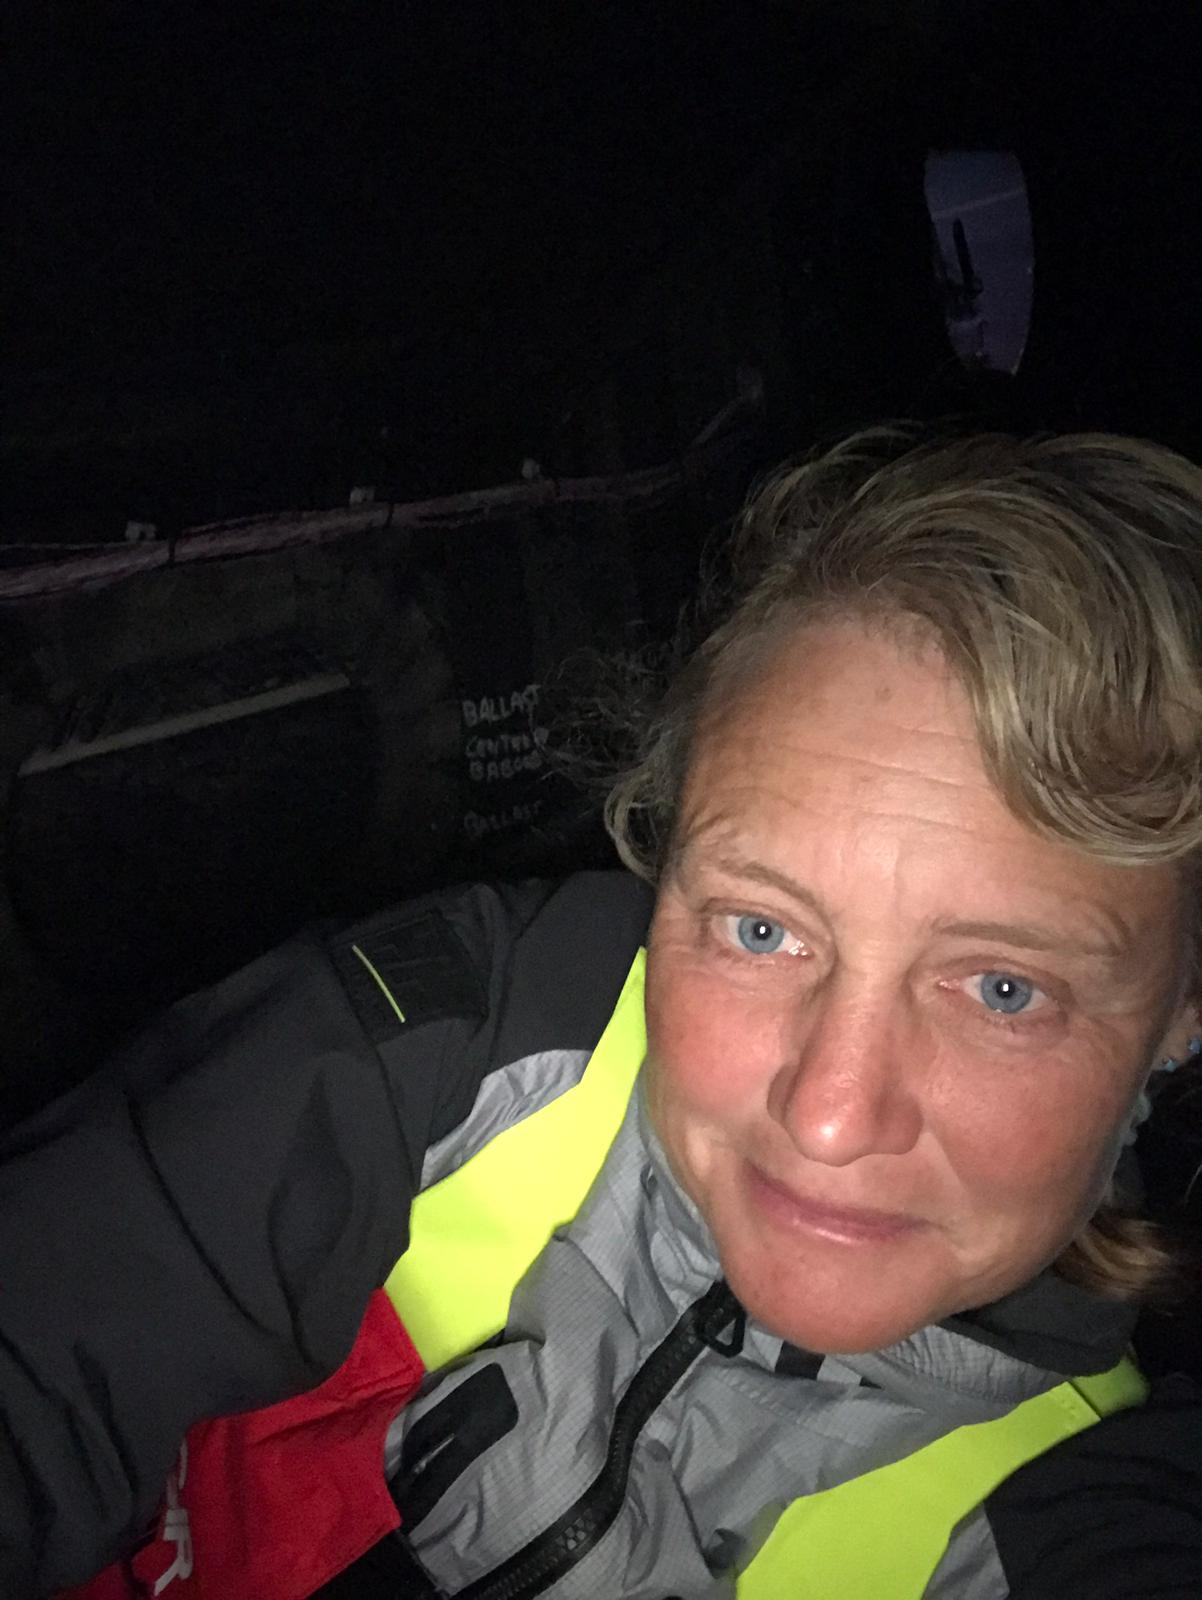 Crawling around in a dark small space. When the boat slams on waves it's like being inside a drum. Over my shoulder you can see the pipes for pumping out each compartment.